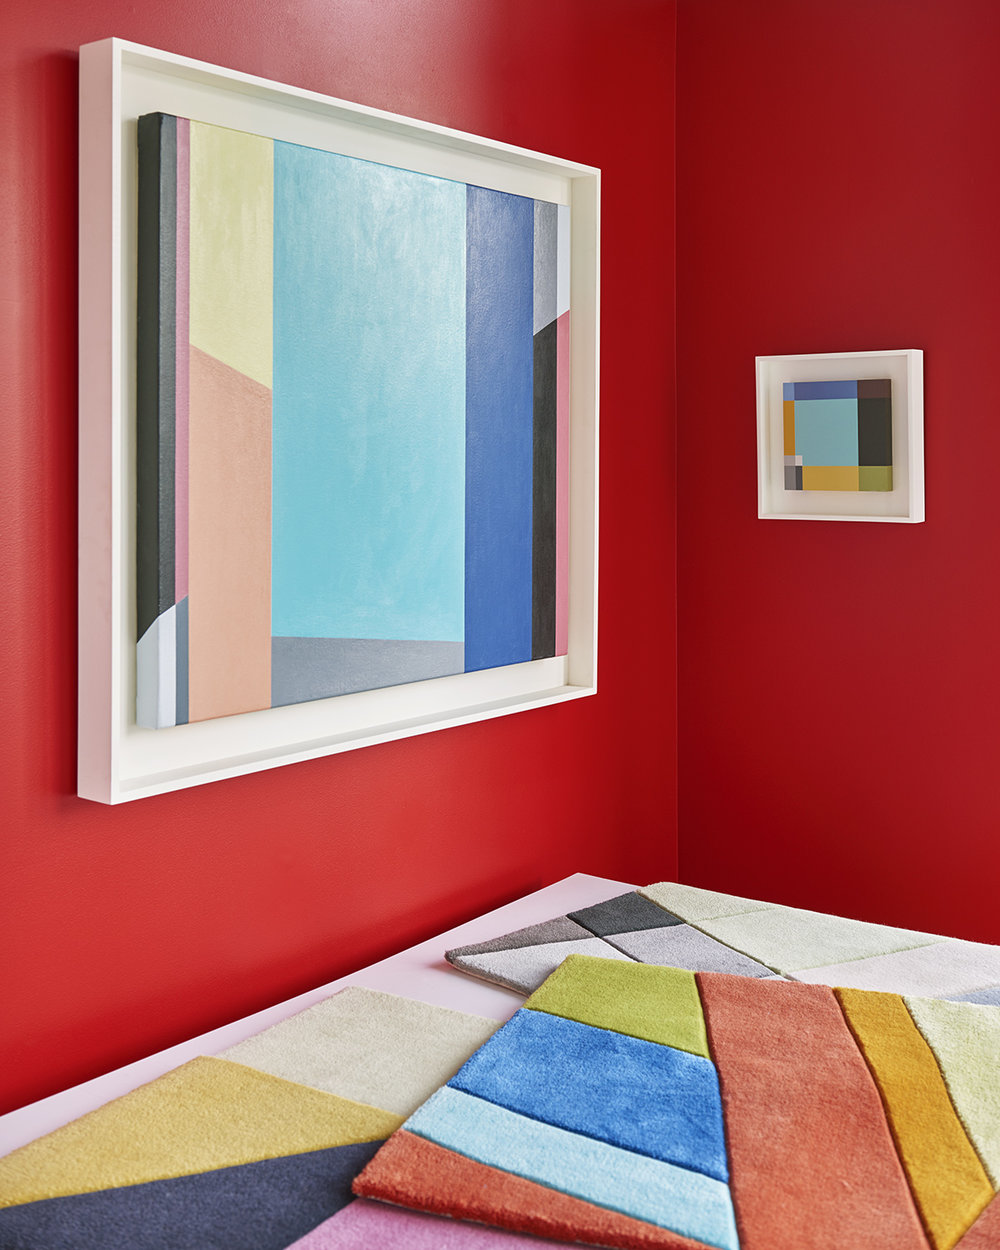 the paintings sing on the red-walled solarium.  on the left, MUSICOLOGY, oil on canvas, 24x27 inches, 2011; on the right, PLAID, oil on panel,  8x8 inches, 2008. On the flat file are samples of each of the rugs, with cut pile and pencil carving.